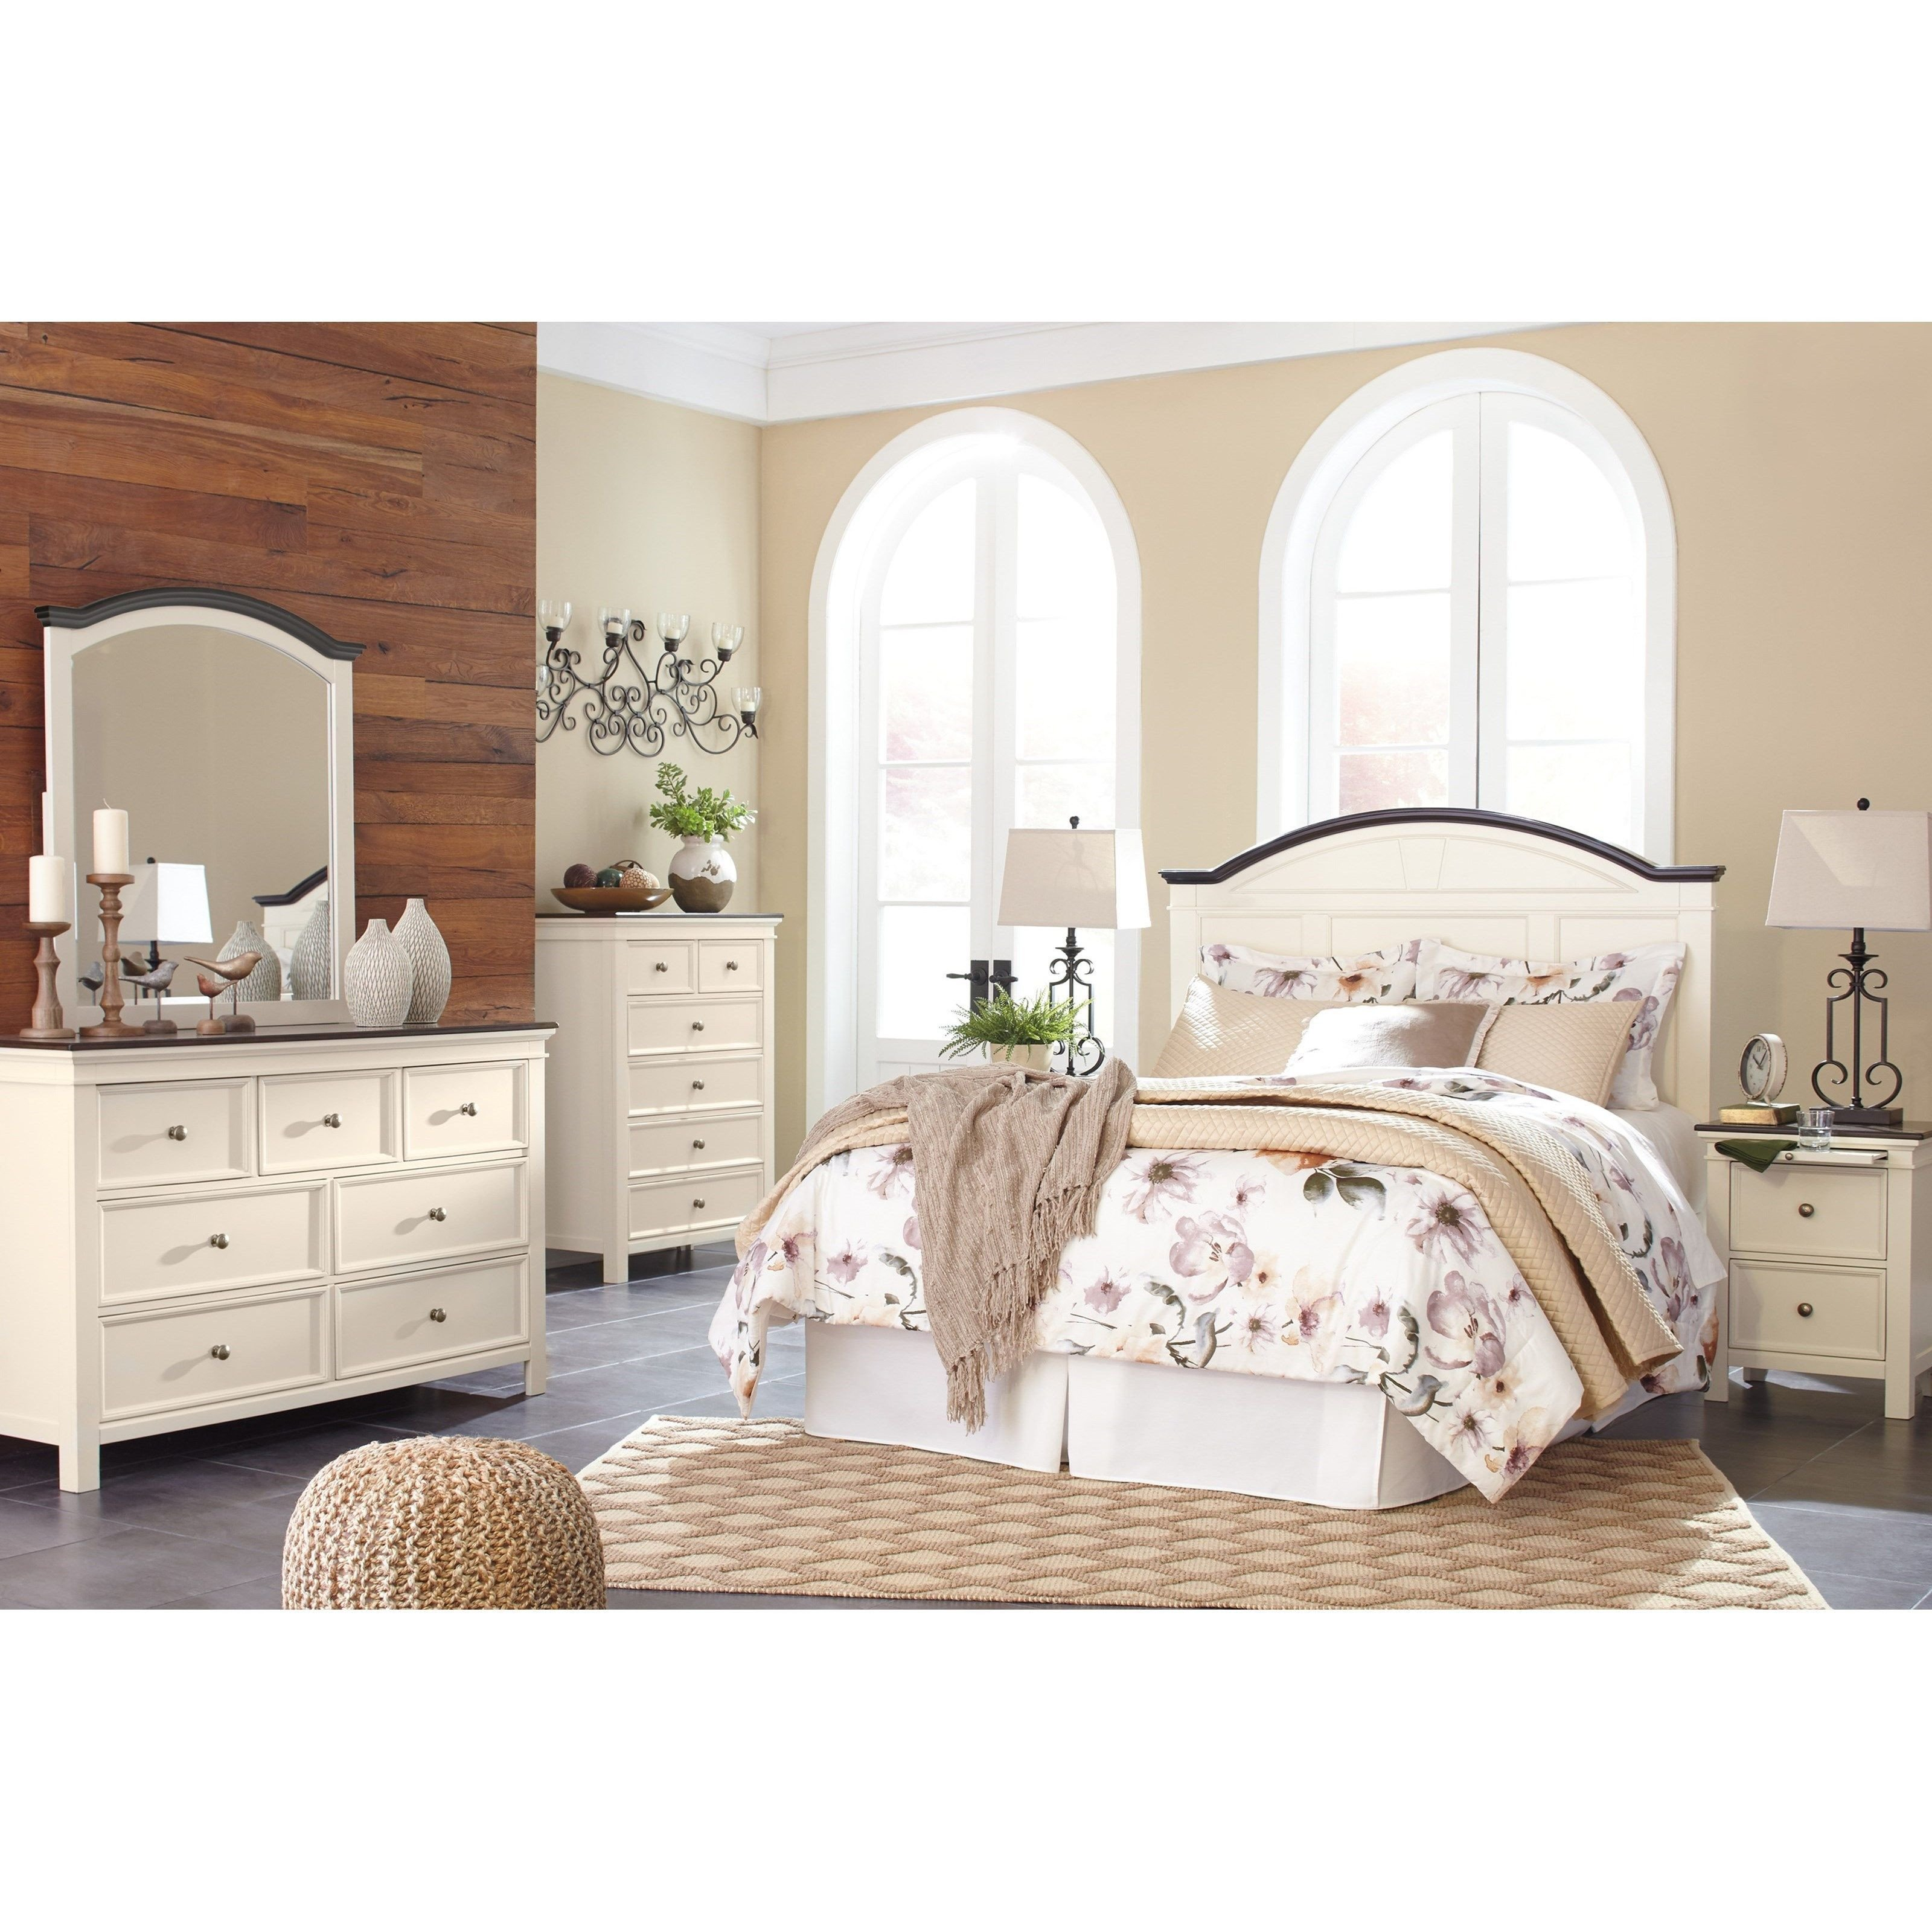 Value City Bedroom Furniture Luxury Woodanville Queen Bedroom Group by Signature Design by